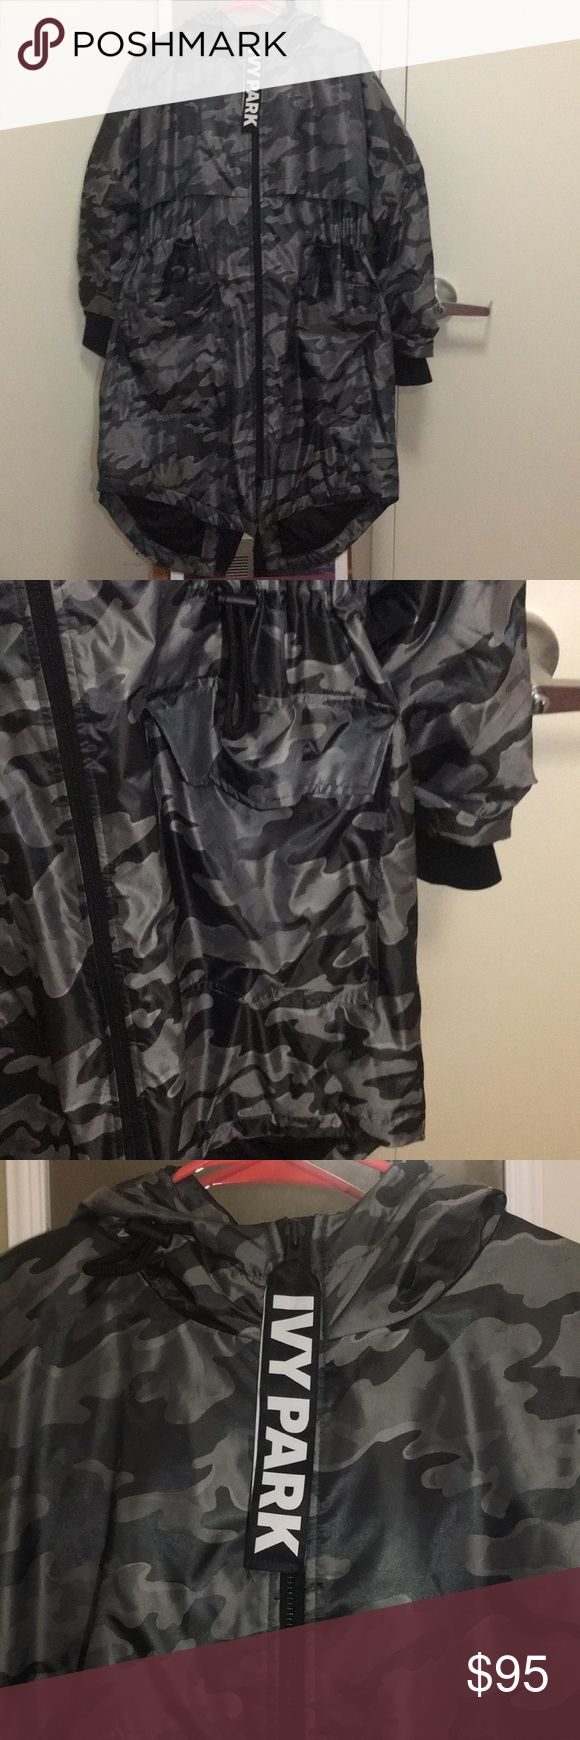 Ivy Park Rain Parka - PRICE IS NEGOTIABLE - Only worn a couple times. XS fits like a Medium. Long light-medium weight parka. Water resistant. SUPER COMFY. Ivy Park Jackets & Coats Trench Coats